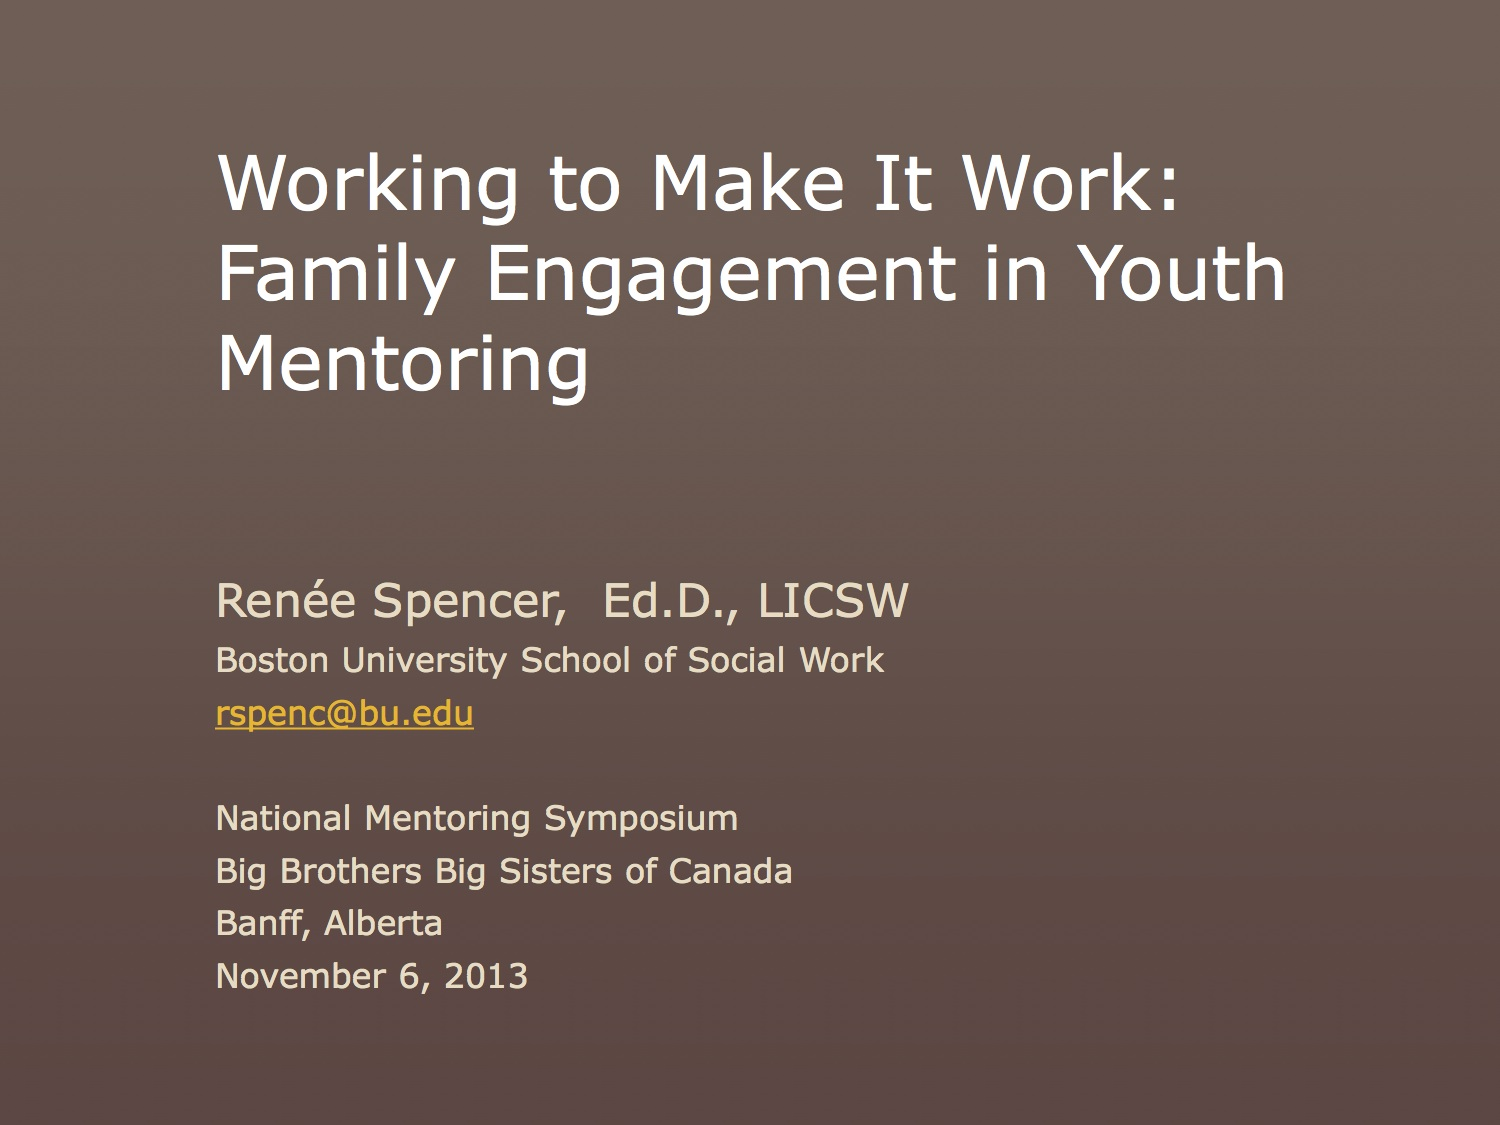 Working to Make It Work: Family Involvement in Youth Mentoring